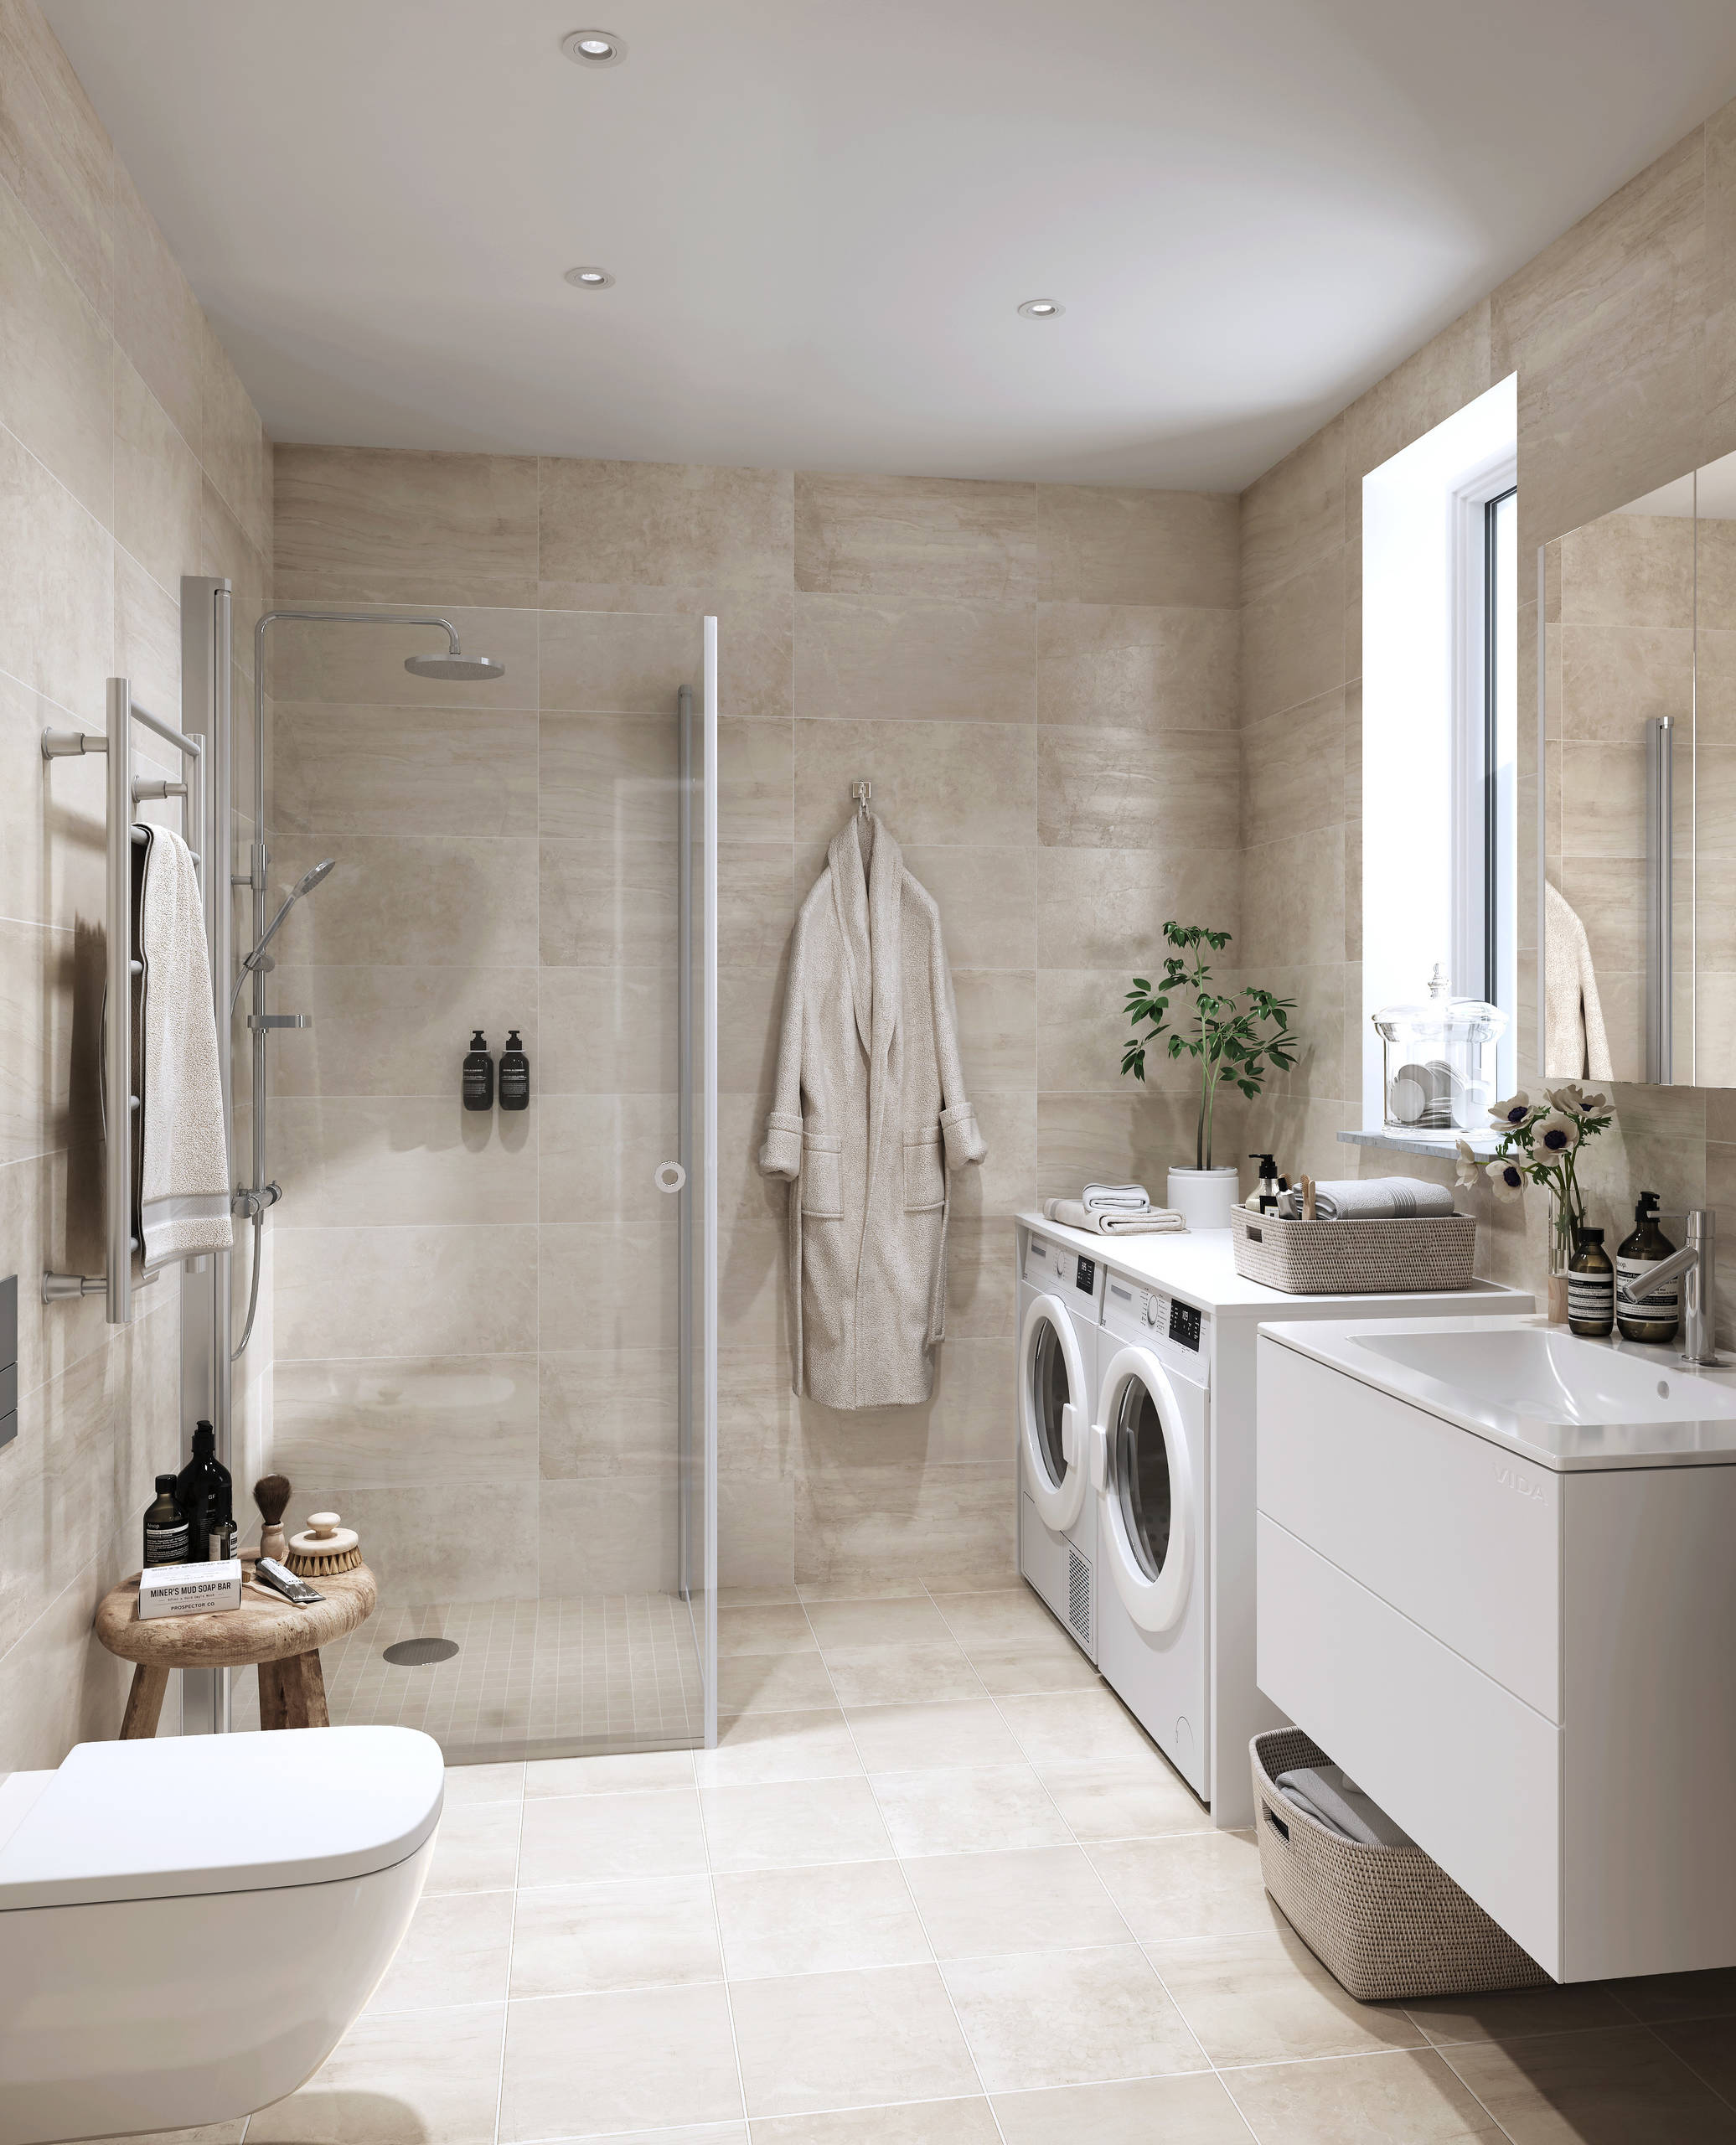 75 Beautiful Bathroom Laundry Room Pictures Ideas April 2021 Houzz